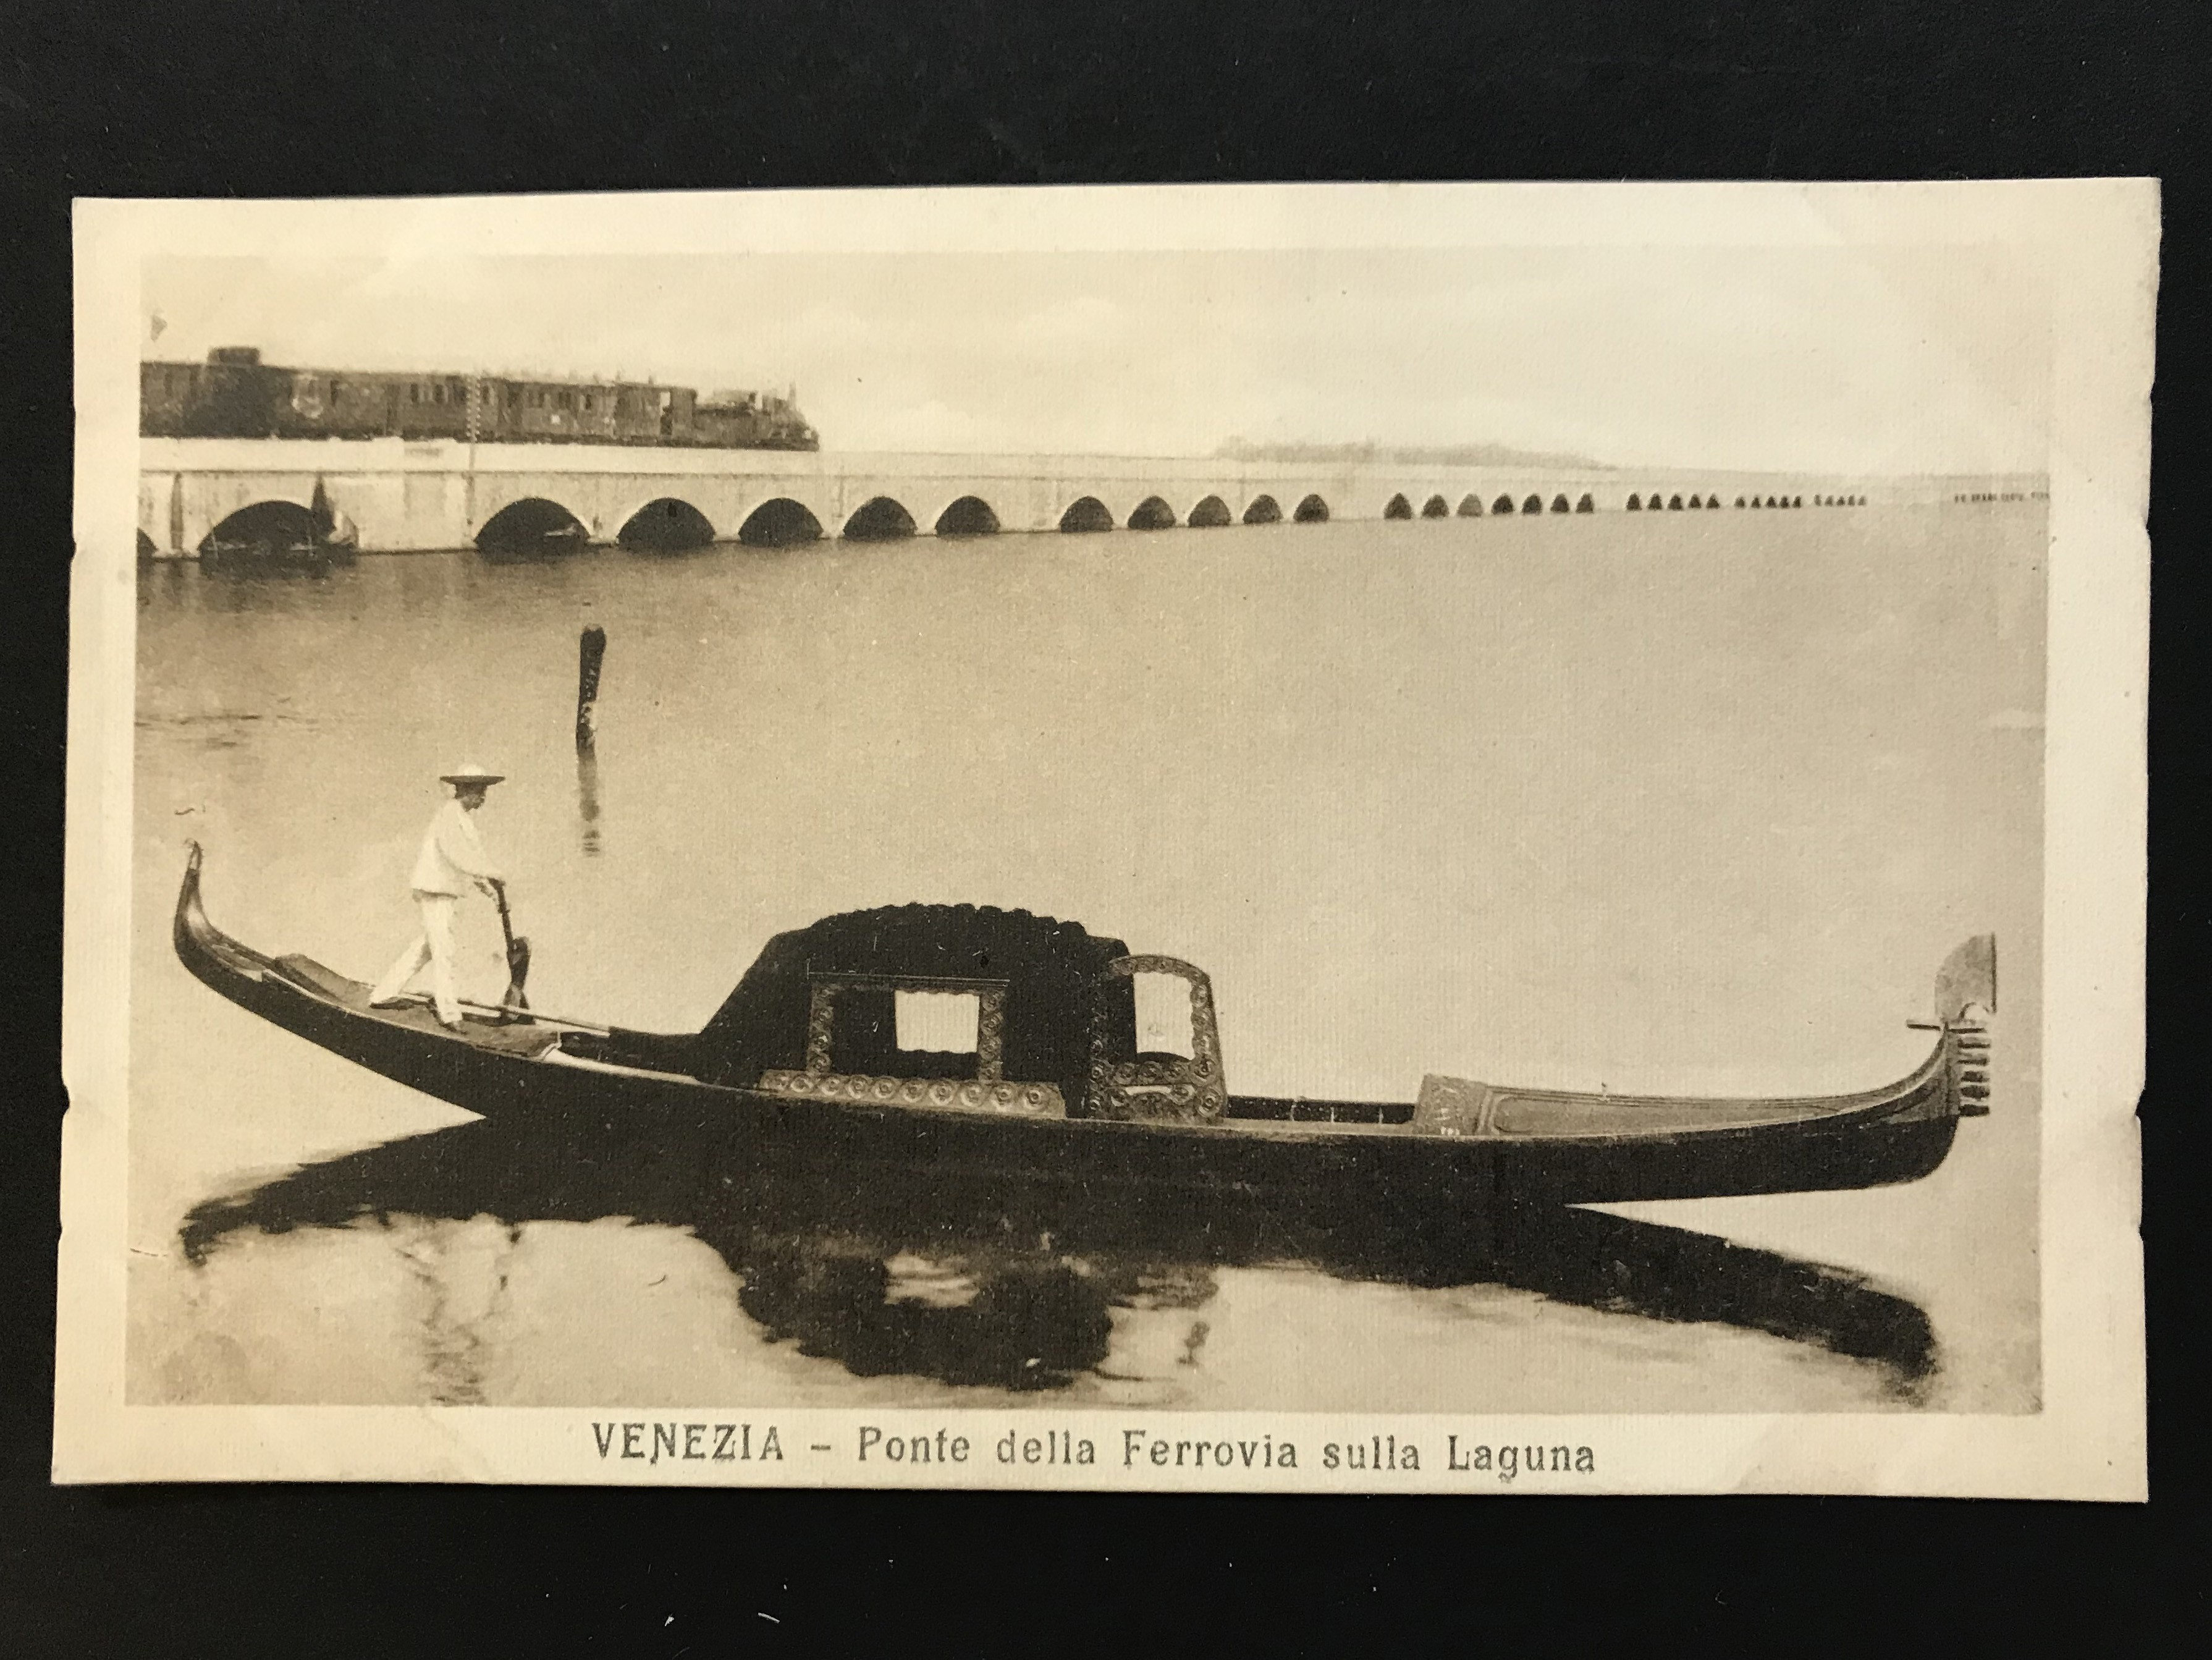 SELECTION OF VENICE RELATED POSTCARDS - Image 33 of 53